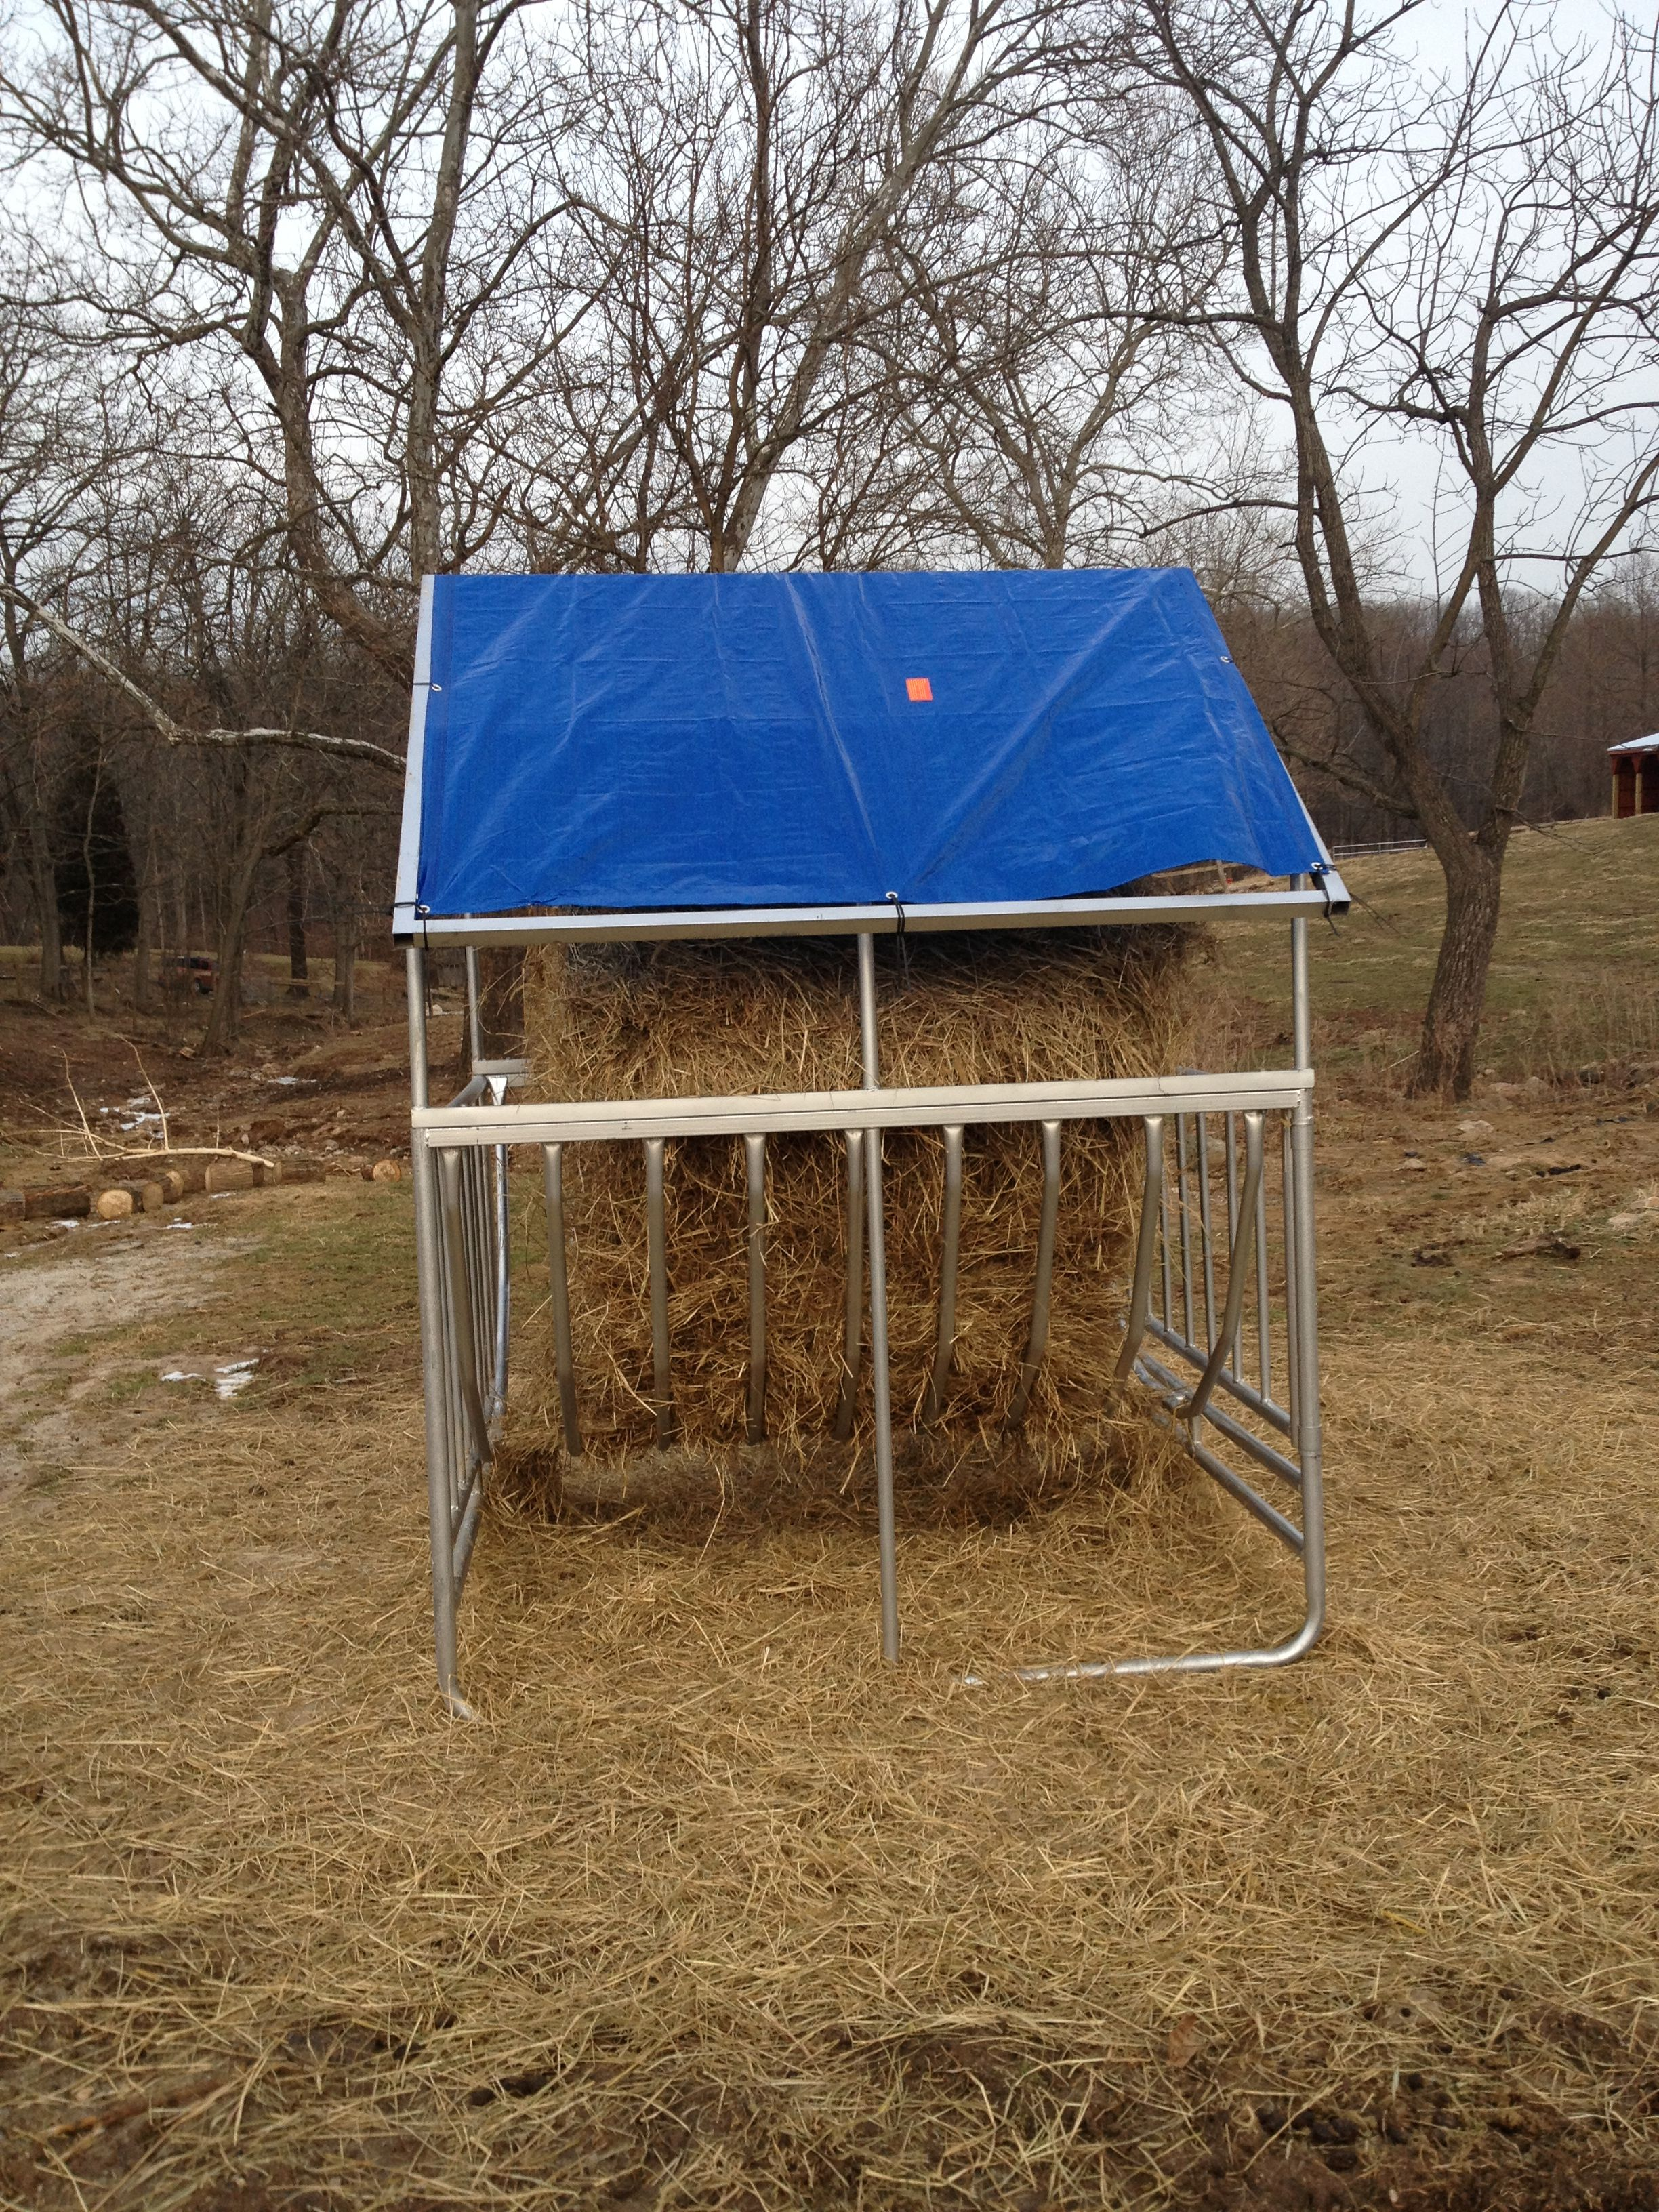 We Purchase This Covered Cradle Round Bale Feeder For The